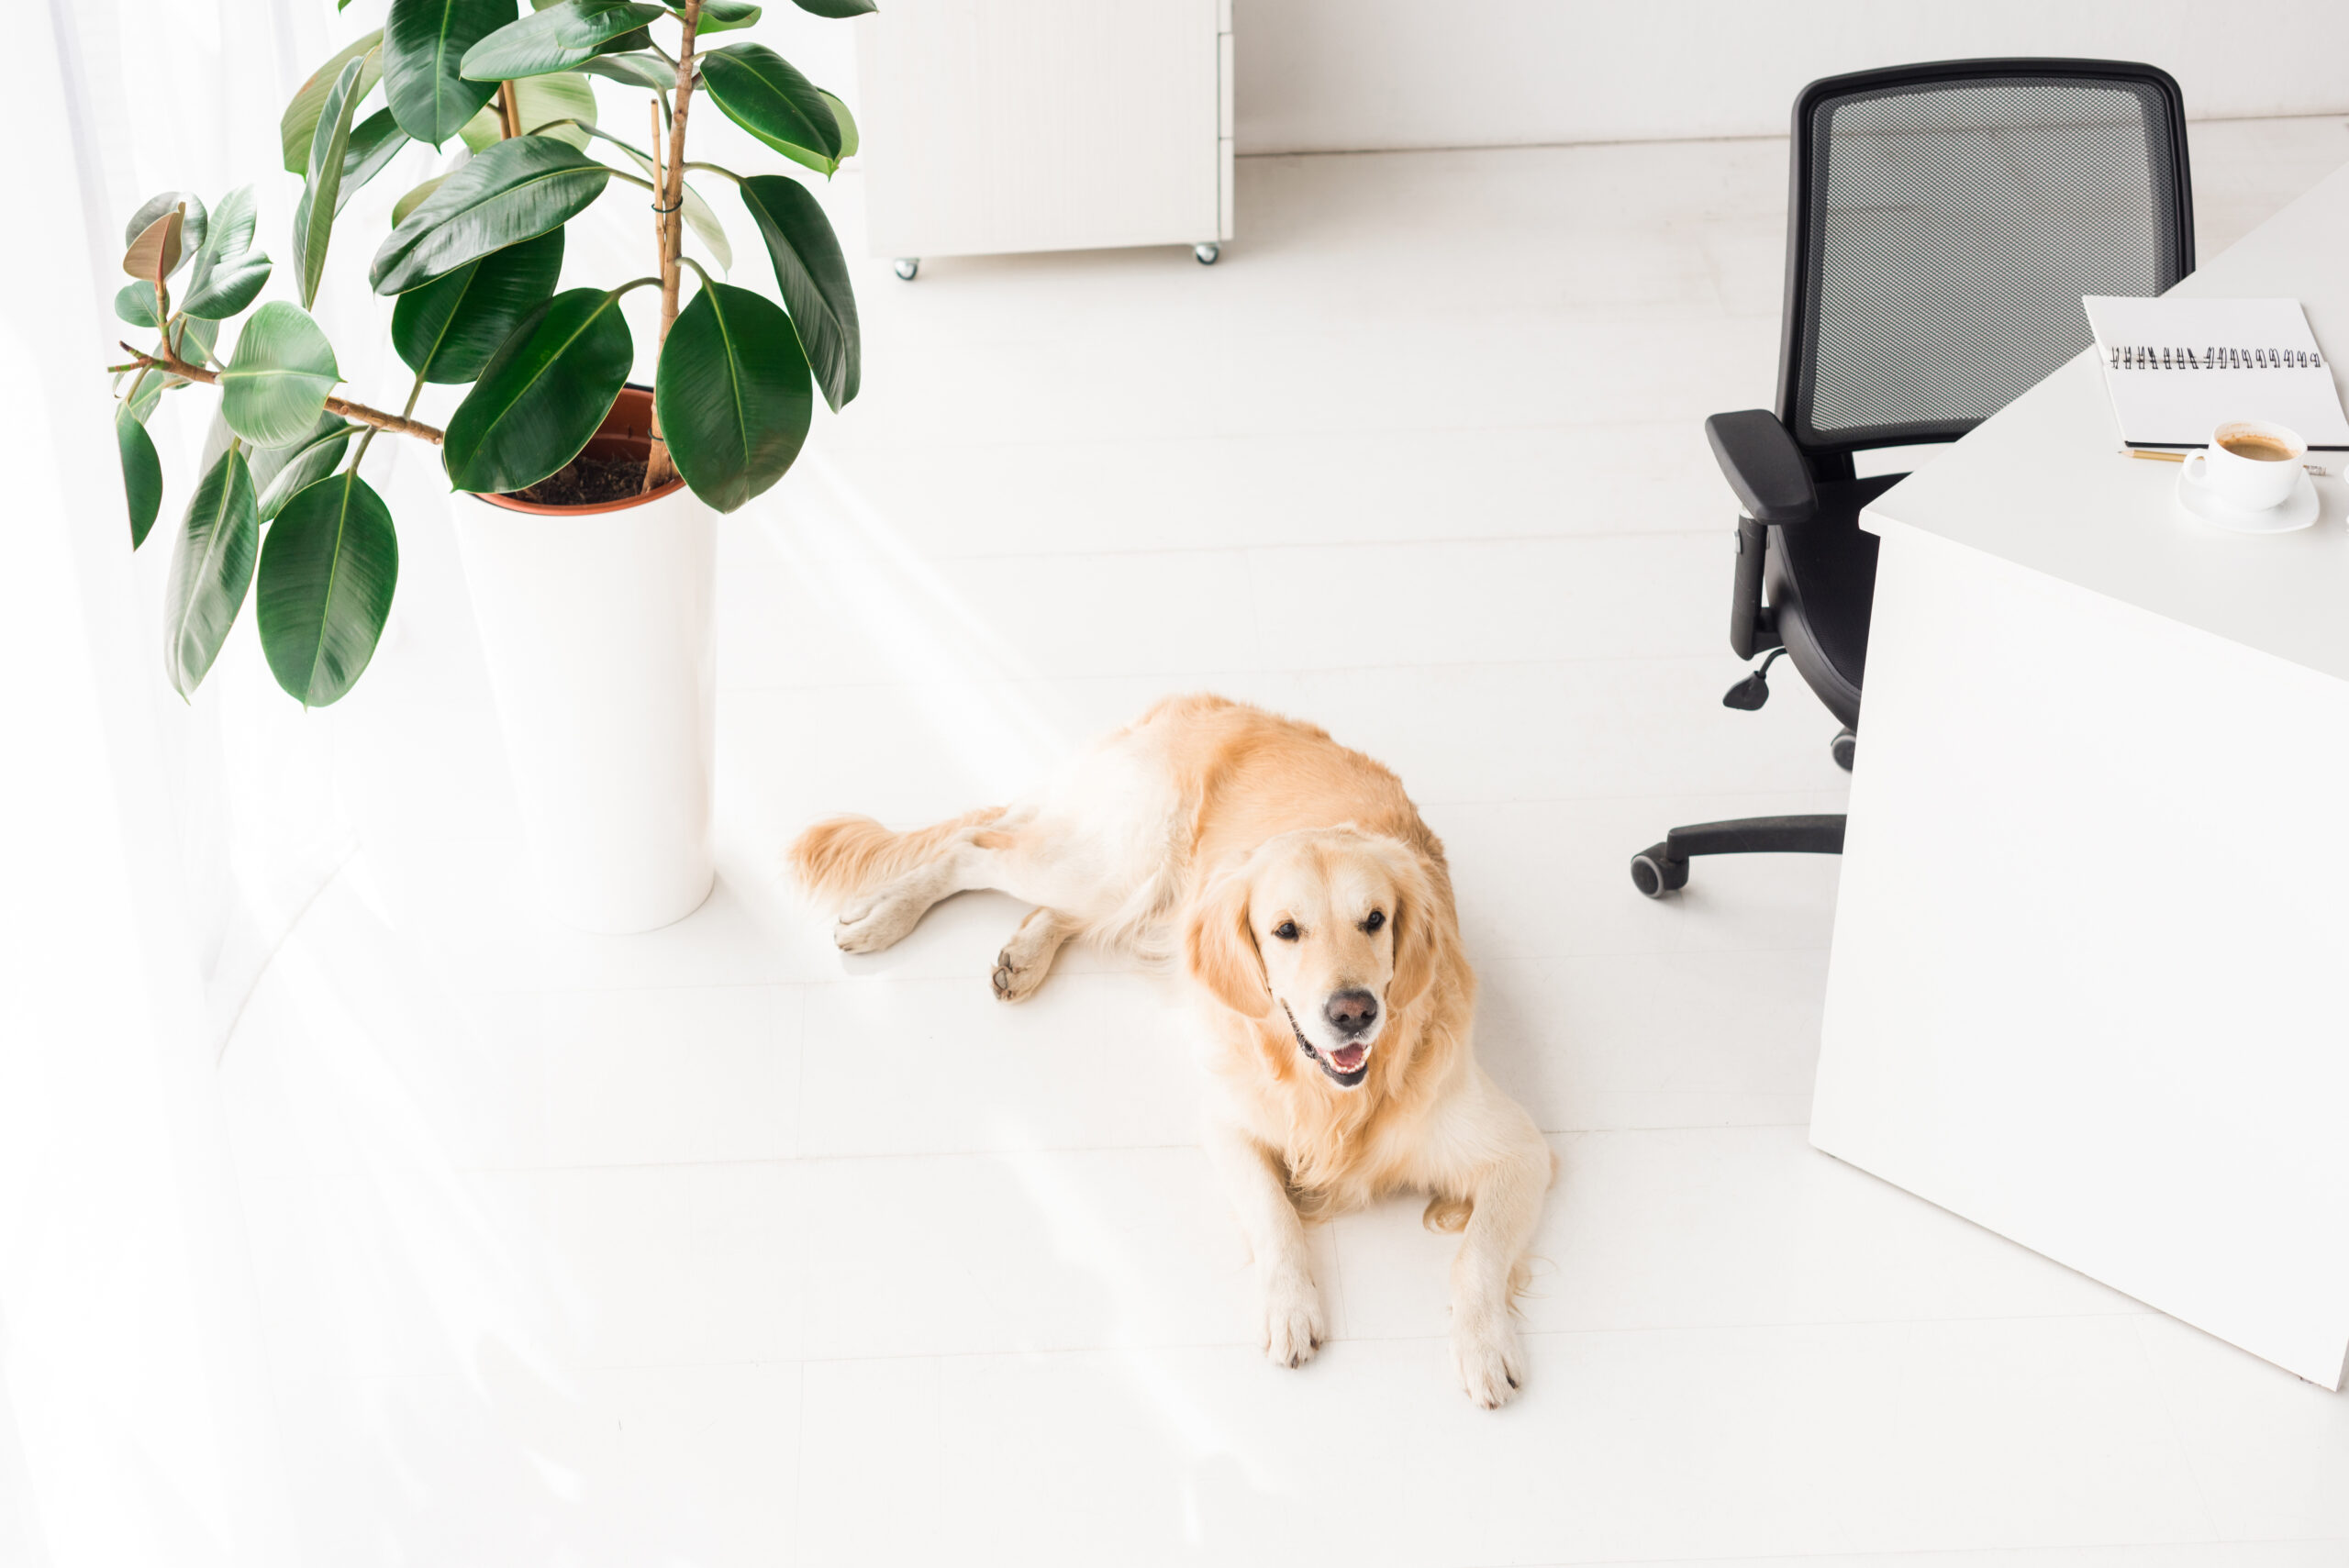 6-reasons-why-companies-should-allow-pets-at-work